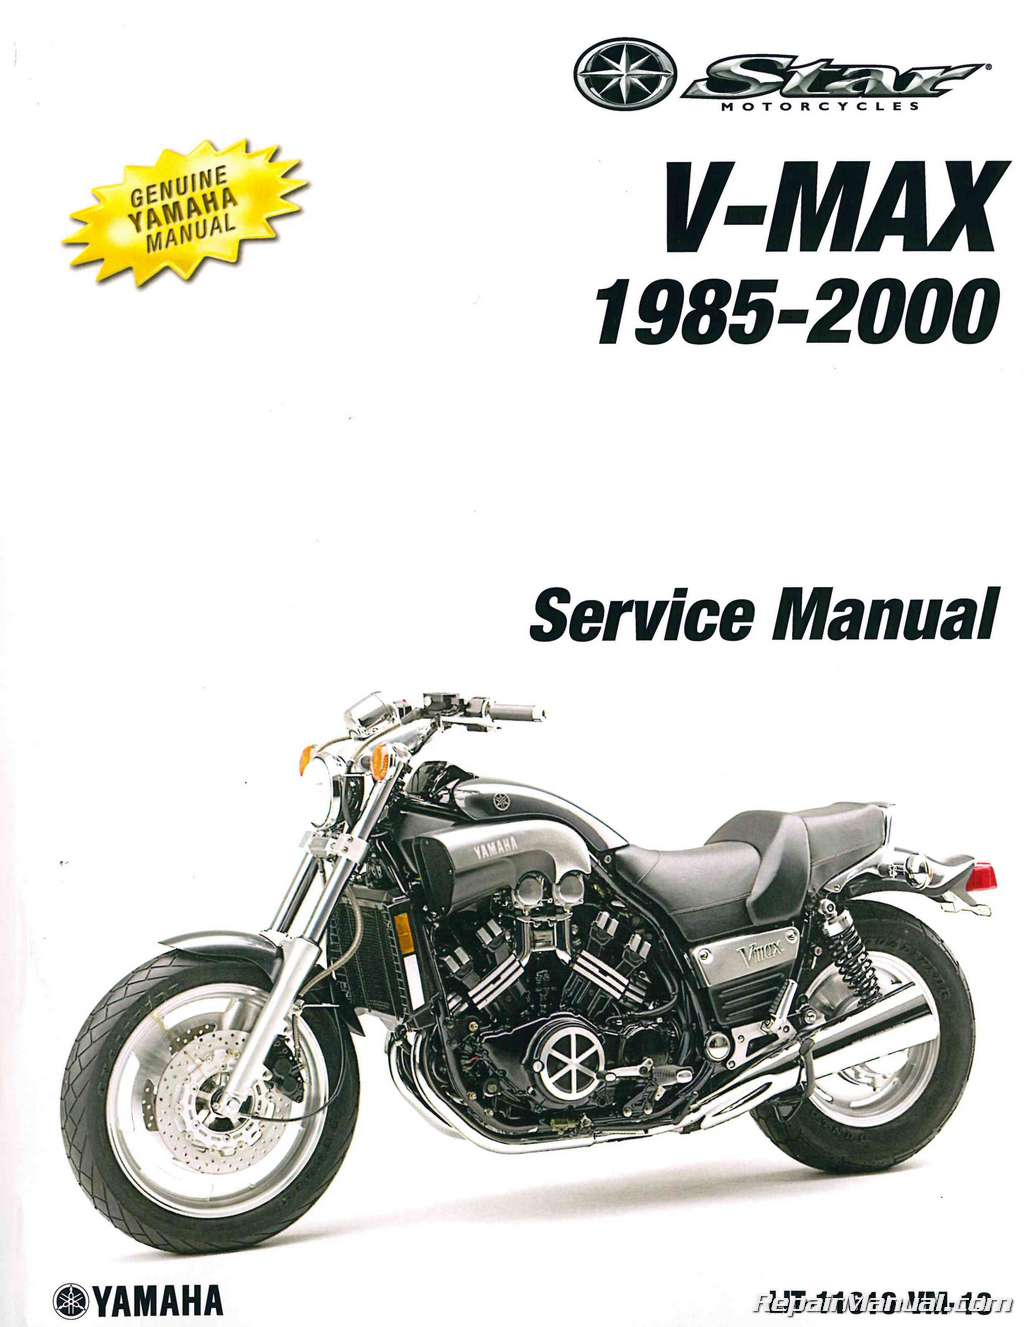 Yamaha Vmax Wiring Diagram - DATA WIRING DIAGRAM •